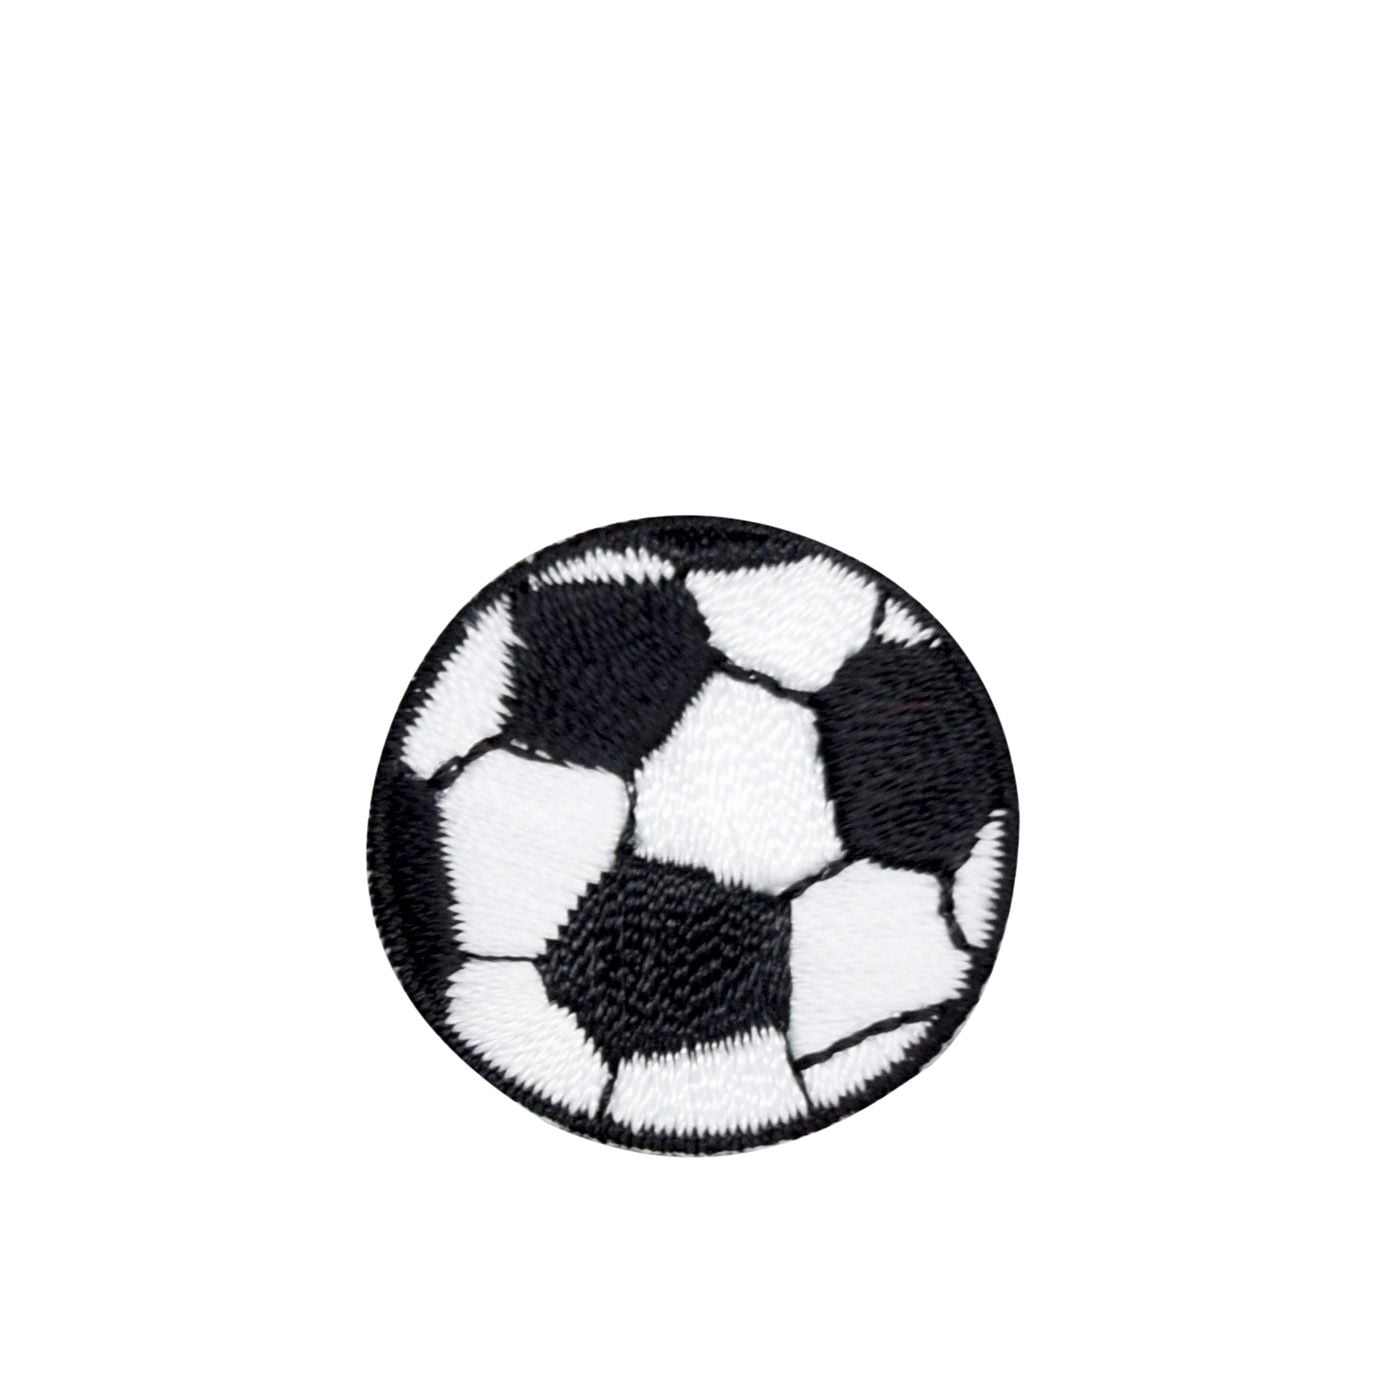 "SOCCER BALL 4"" ROUND CHENILLE EMBROIDERED PATCH APPLIQUE SEW ON STYLE"